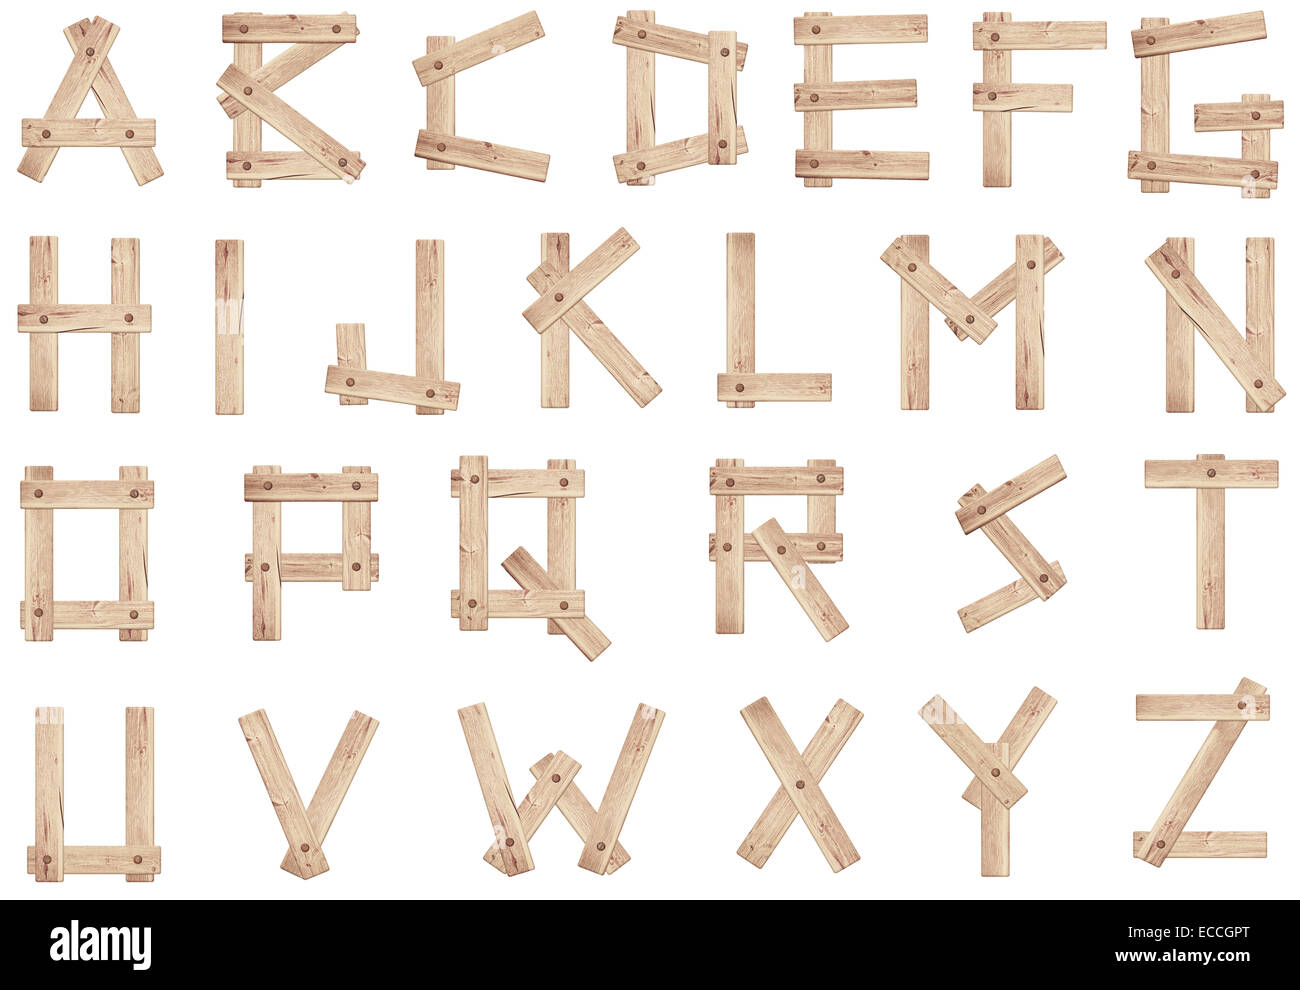 where to buy wooden letters wooden alphabet letters made of wood planks stock 25632 | old wooden alphabet letters made of wood planks ECCGPT